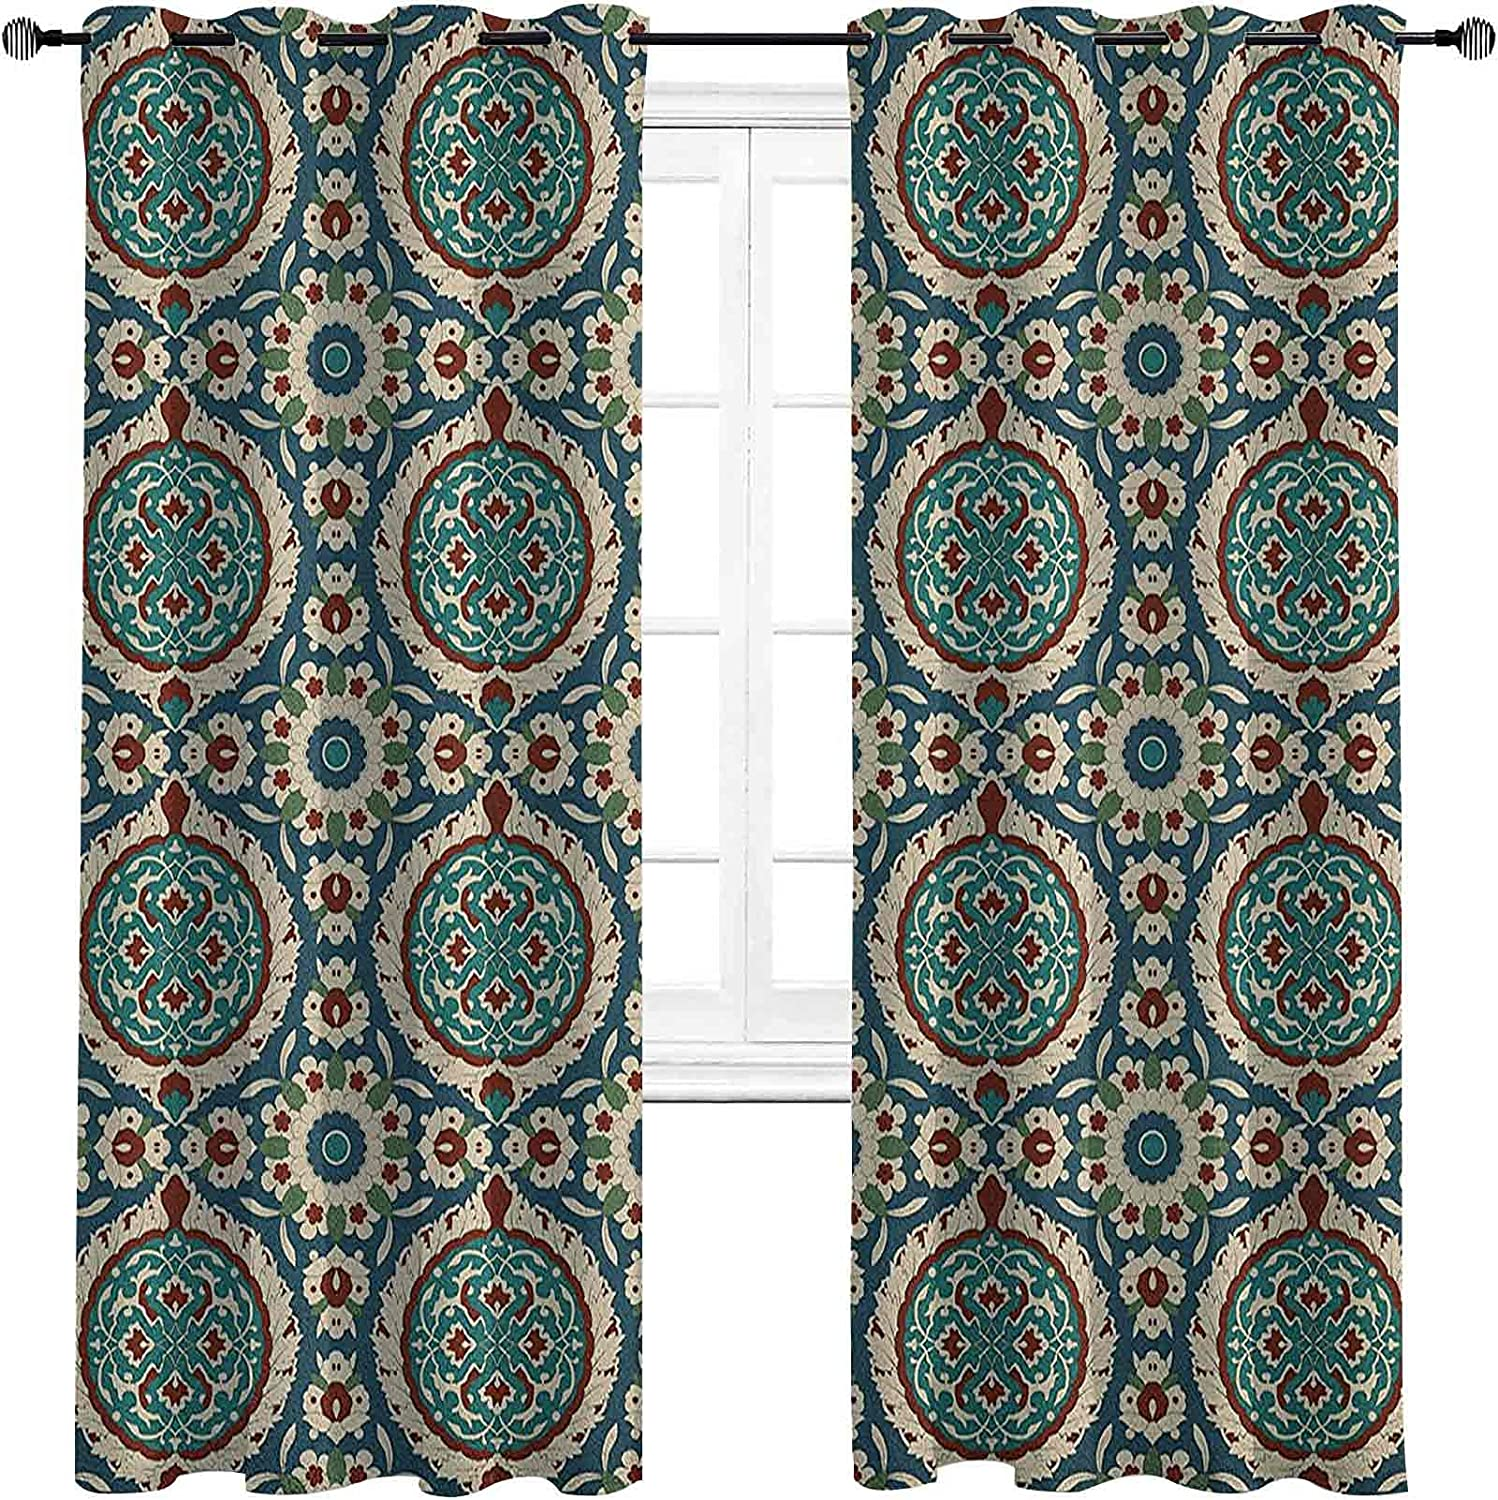 n 90%-99% Popular shop is the lowest price challenge Blackout Lining Curtain Classic Anc Design Graphic of Dallas Mall